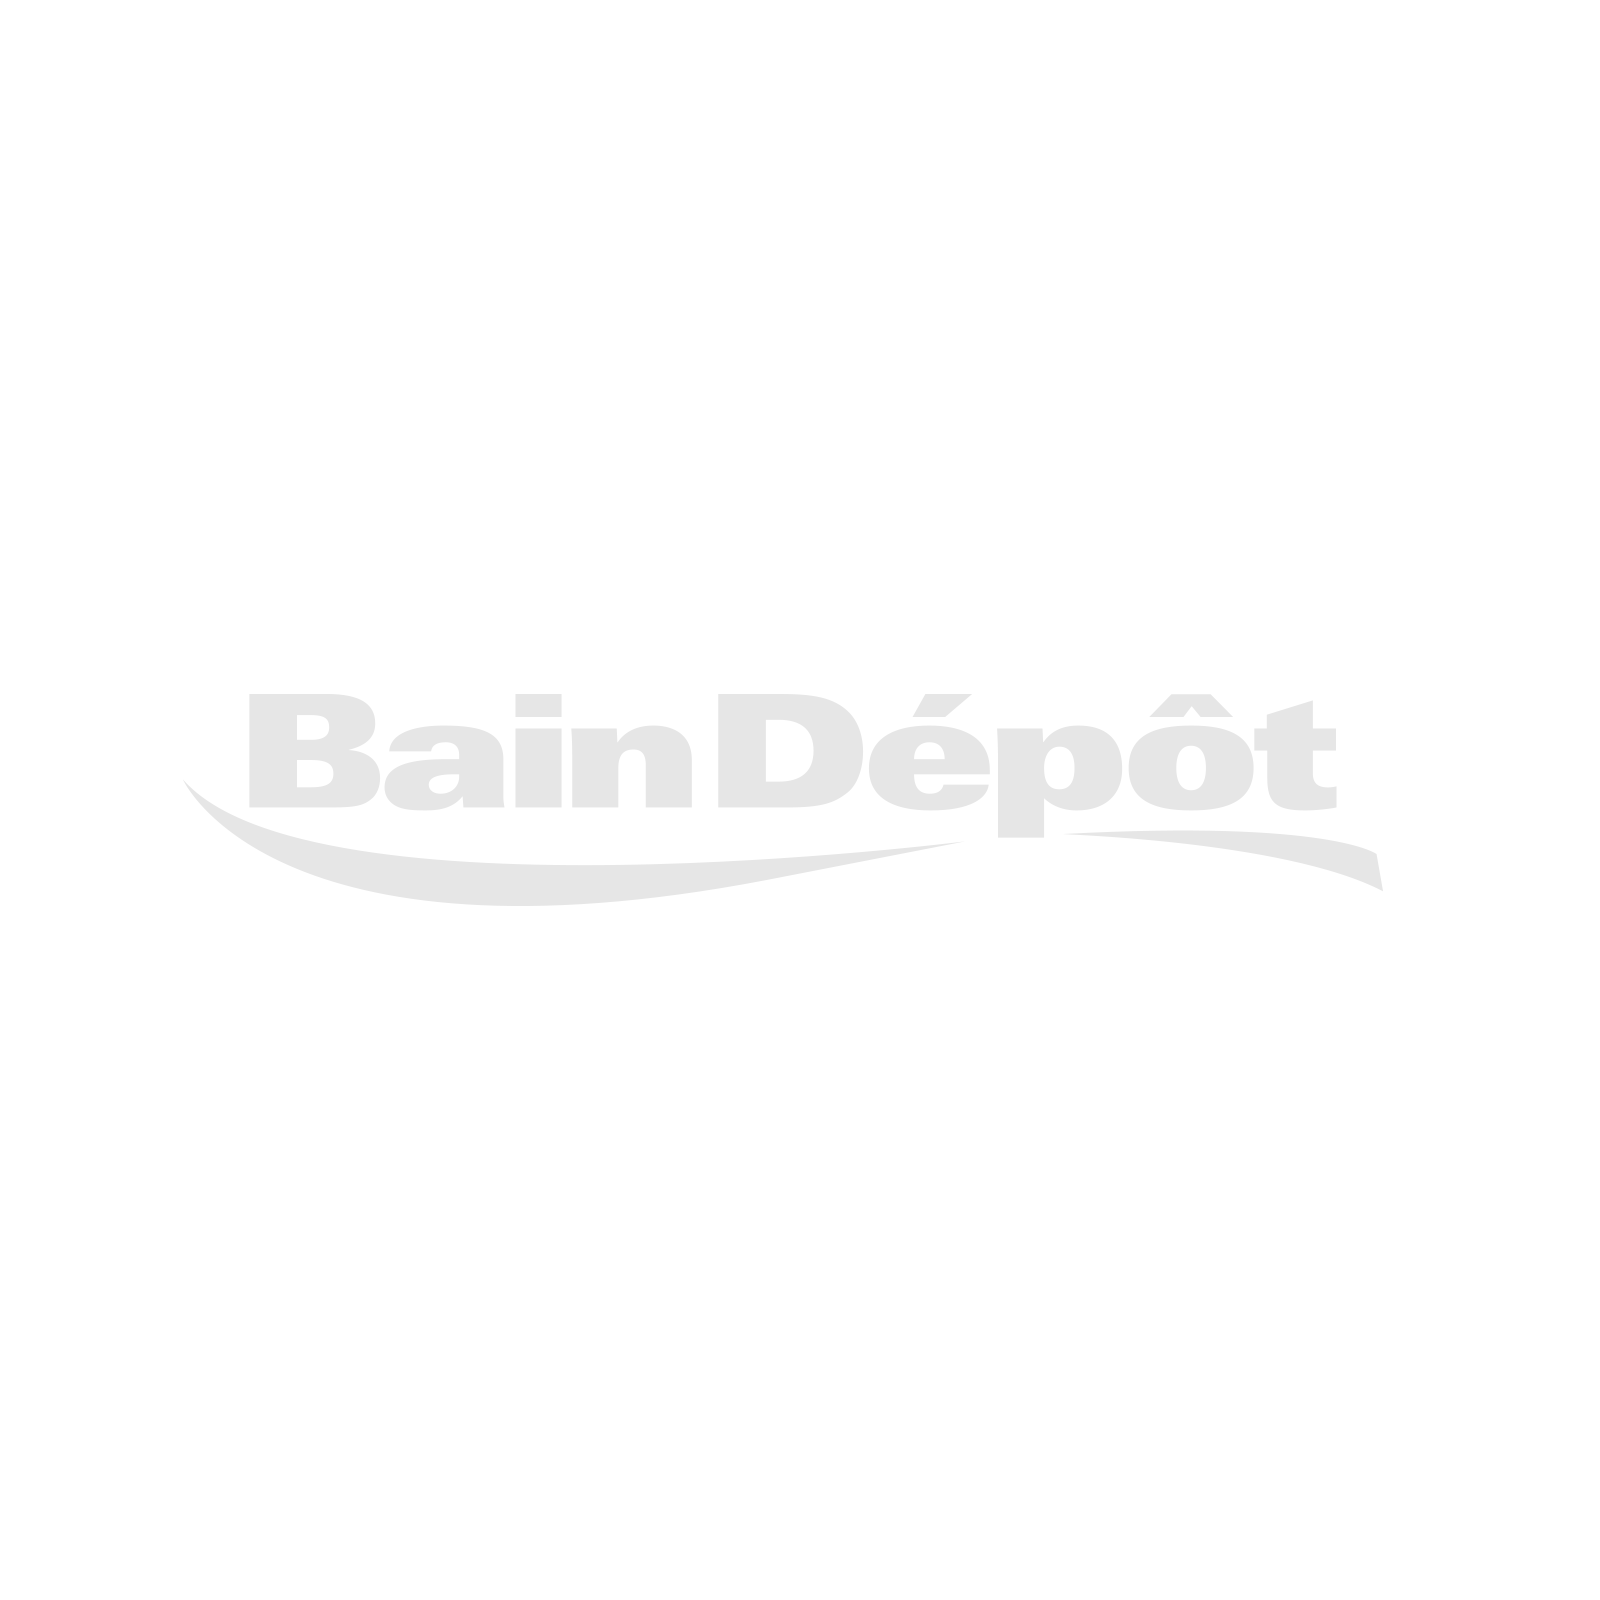 "18"" x 34.5"" Four-drawer base kitchen cabinet"